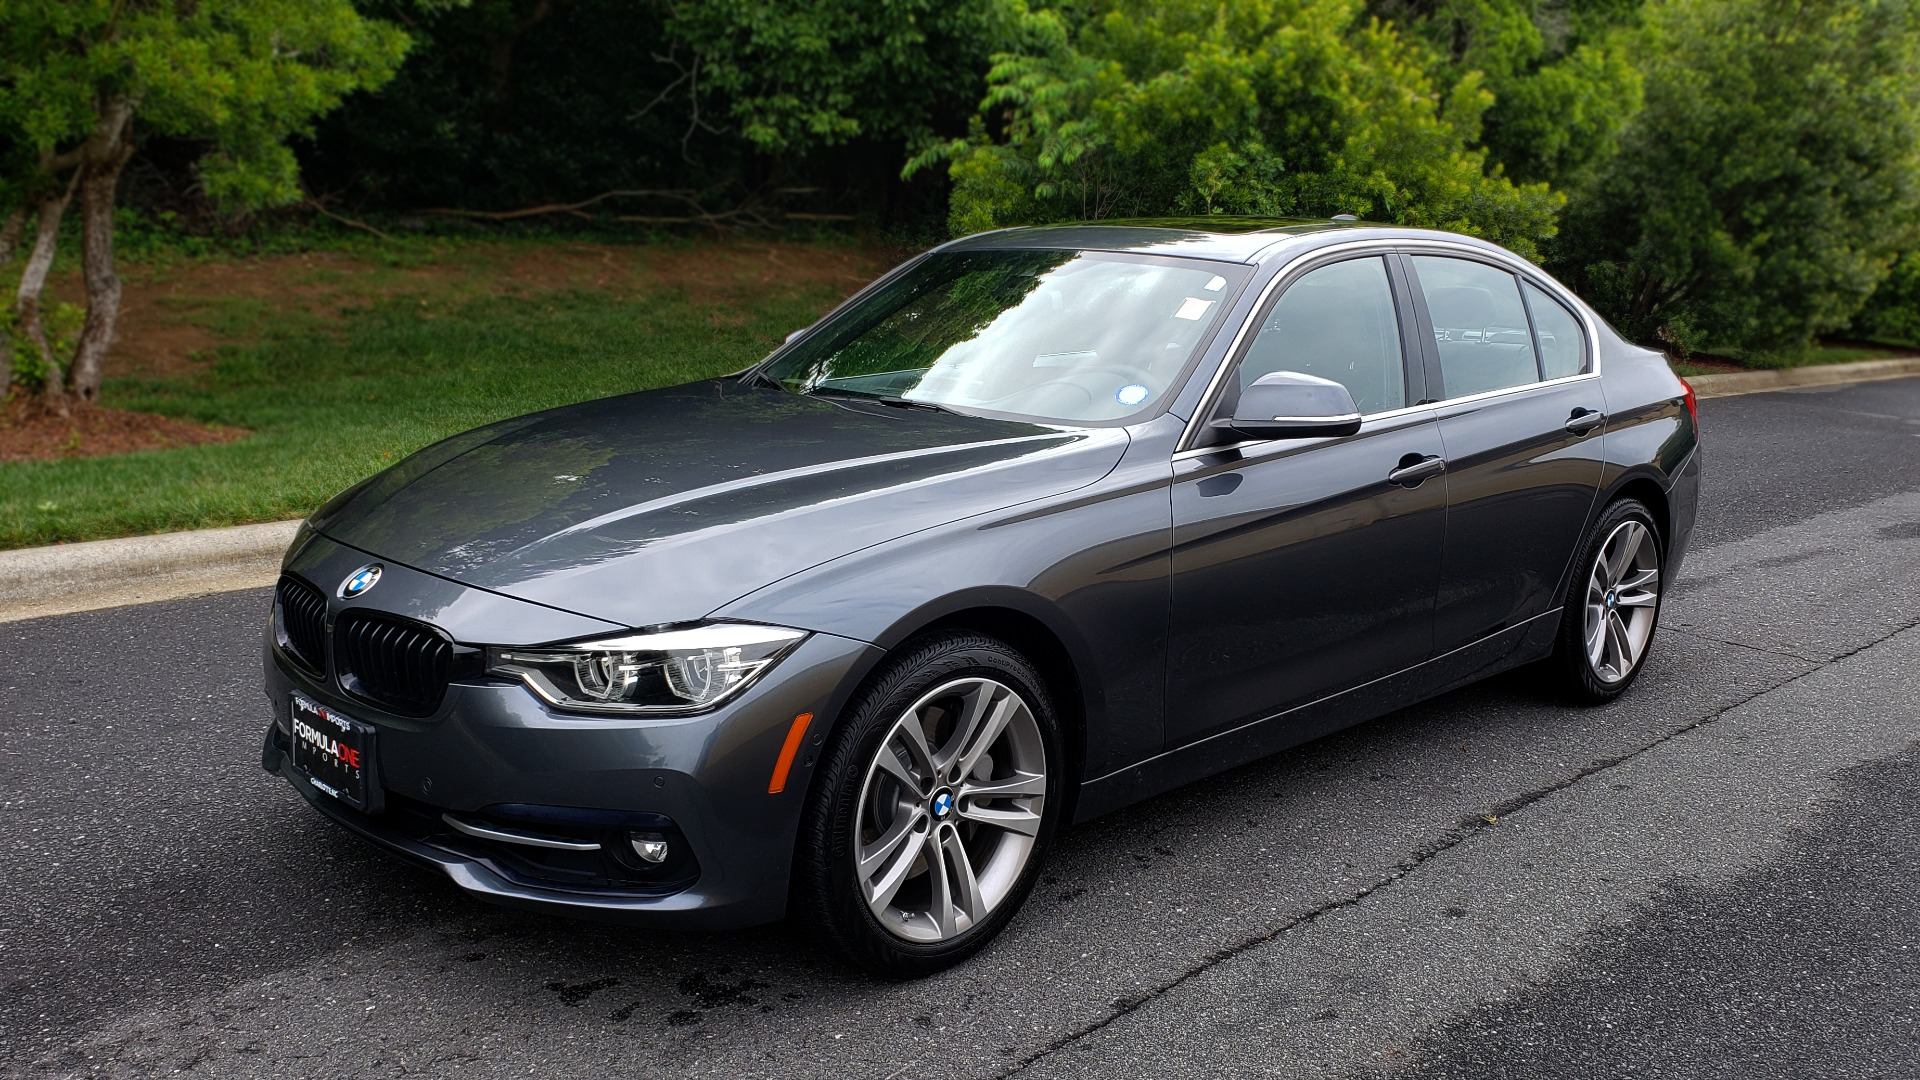 Used 2017 BMW 3 SERIES 340I XDRIVE SPORT / NAV / DRVR ASST PLUS / PARK ASST / CLD WTHR for sale $28,995 at Formula Imports in Charlotte NC 28227 1